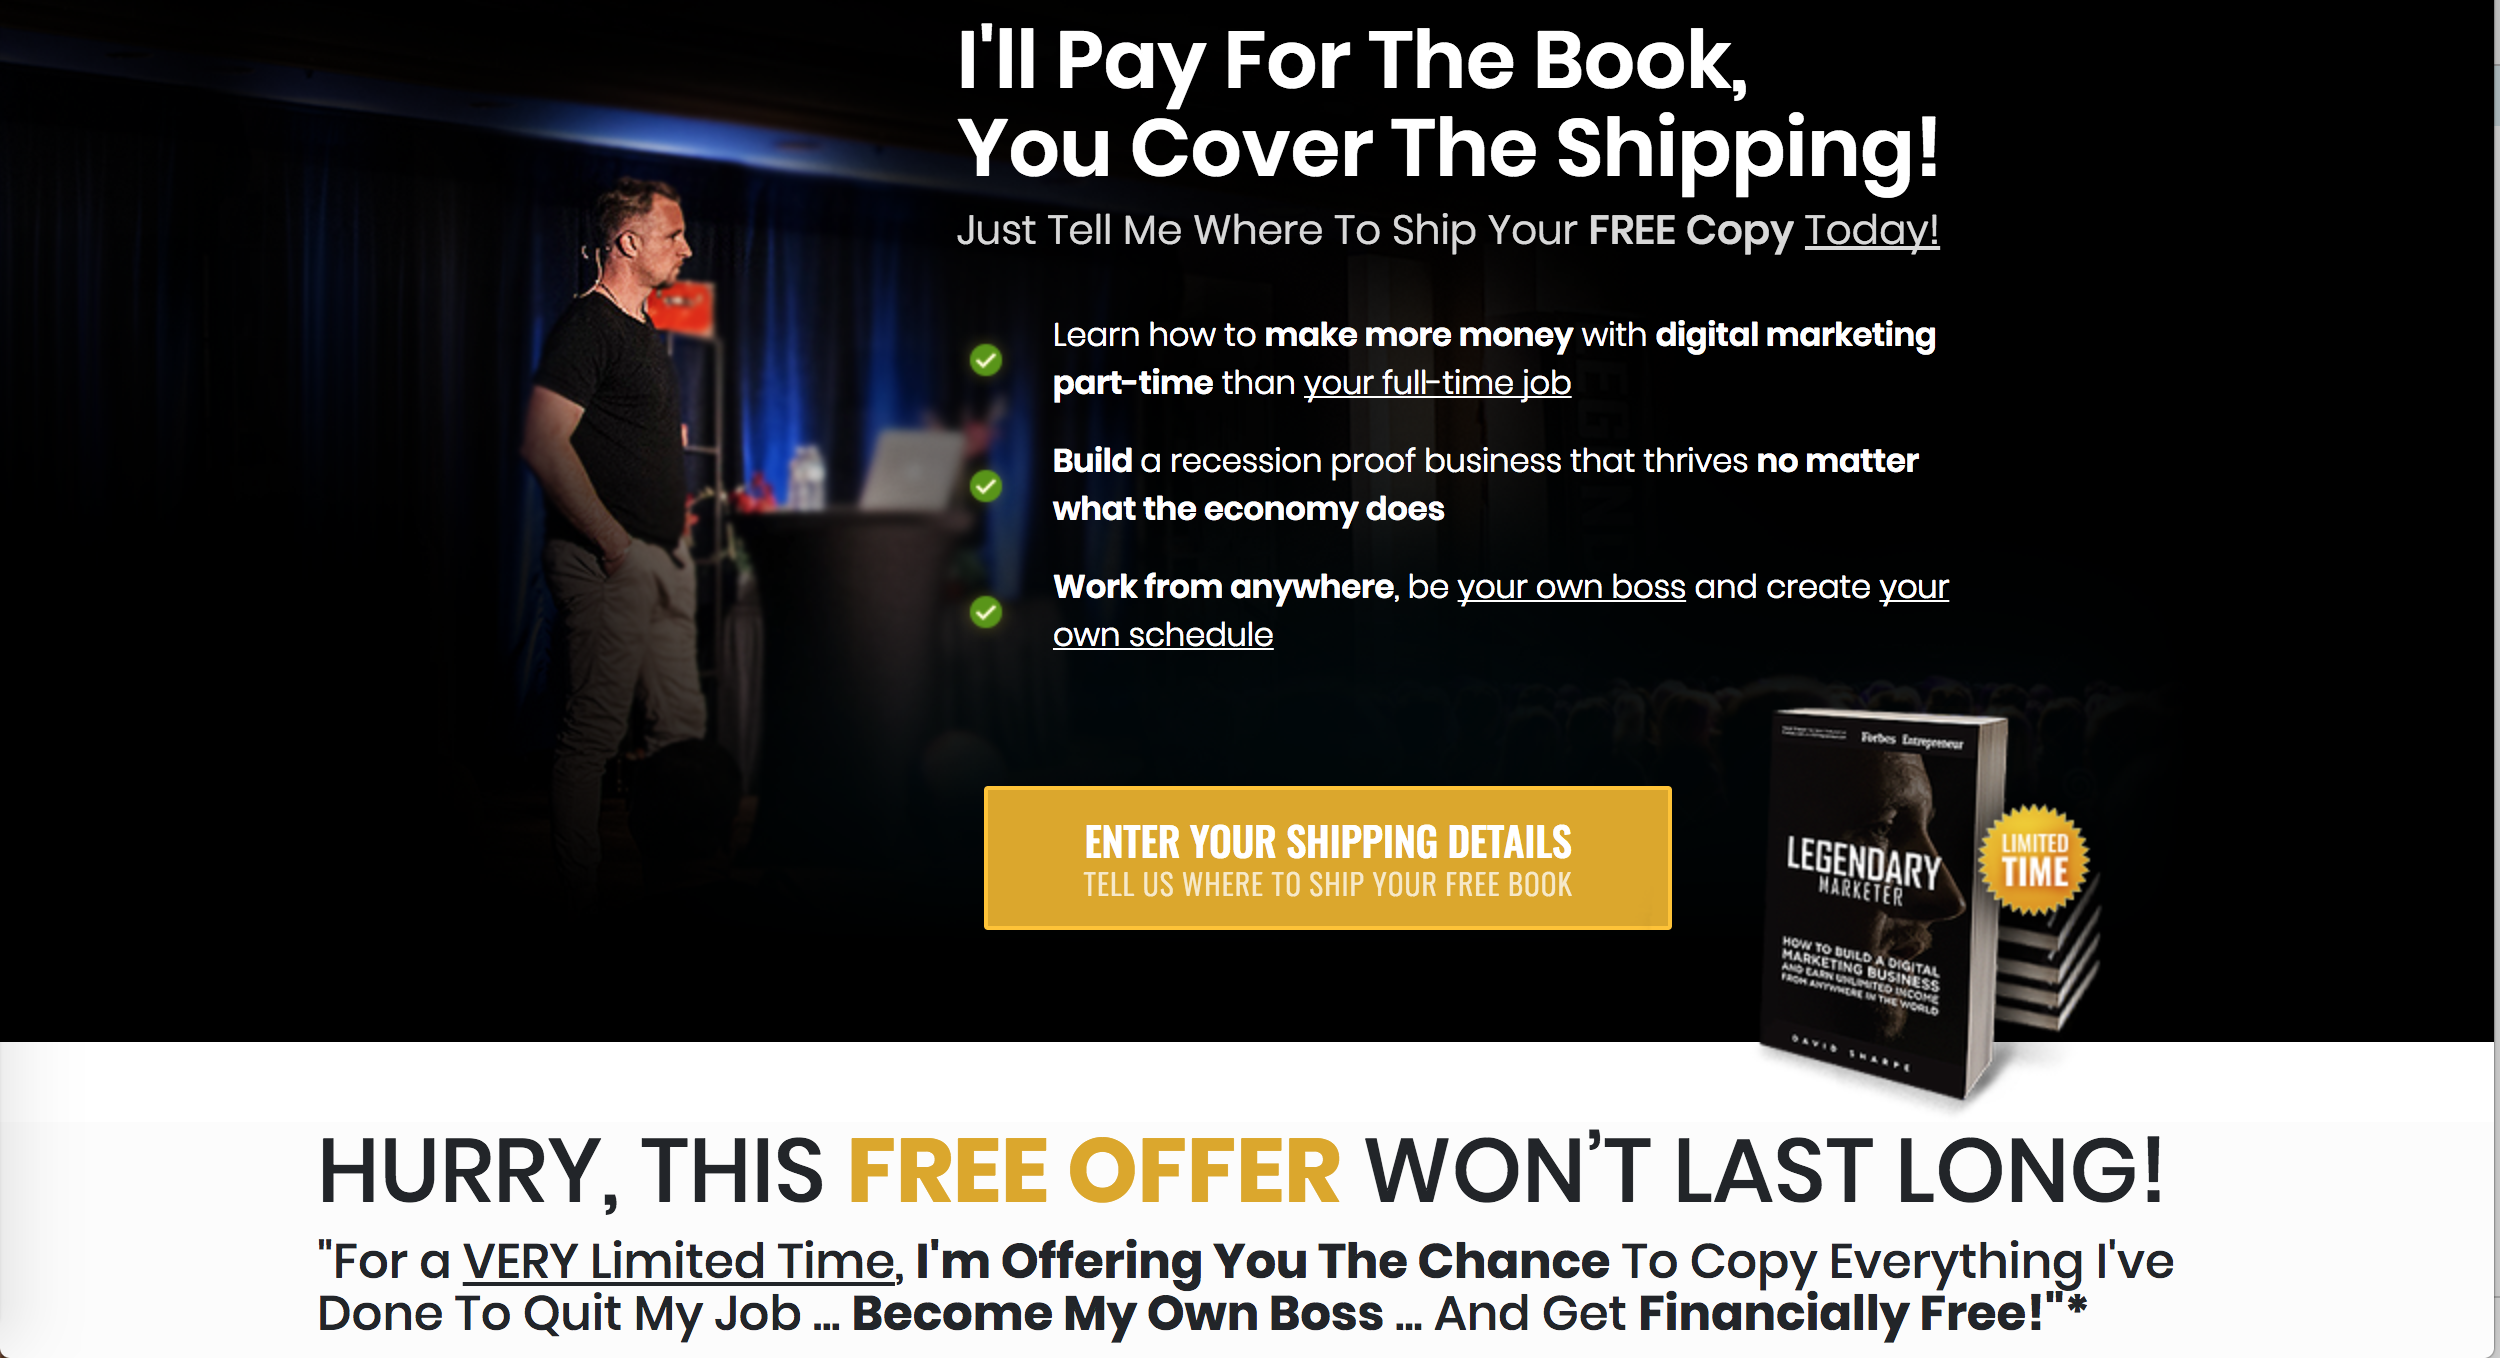 Buy Legendary Marketer Promo Coupon Printables 20 Off